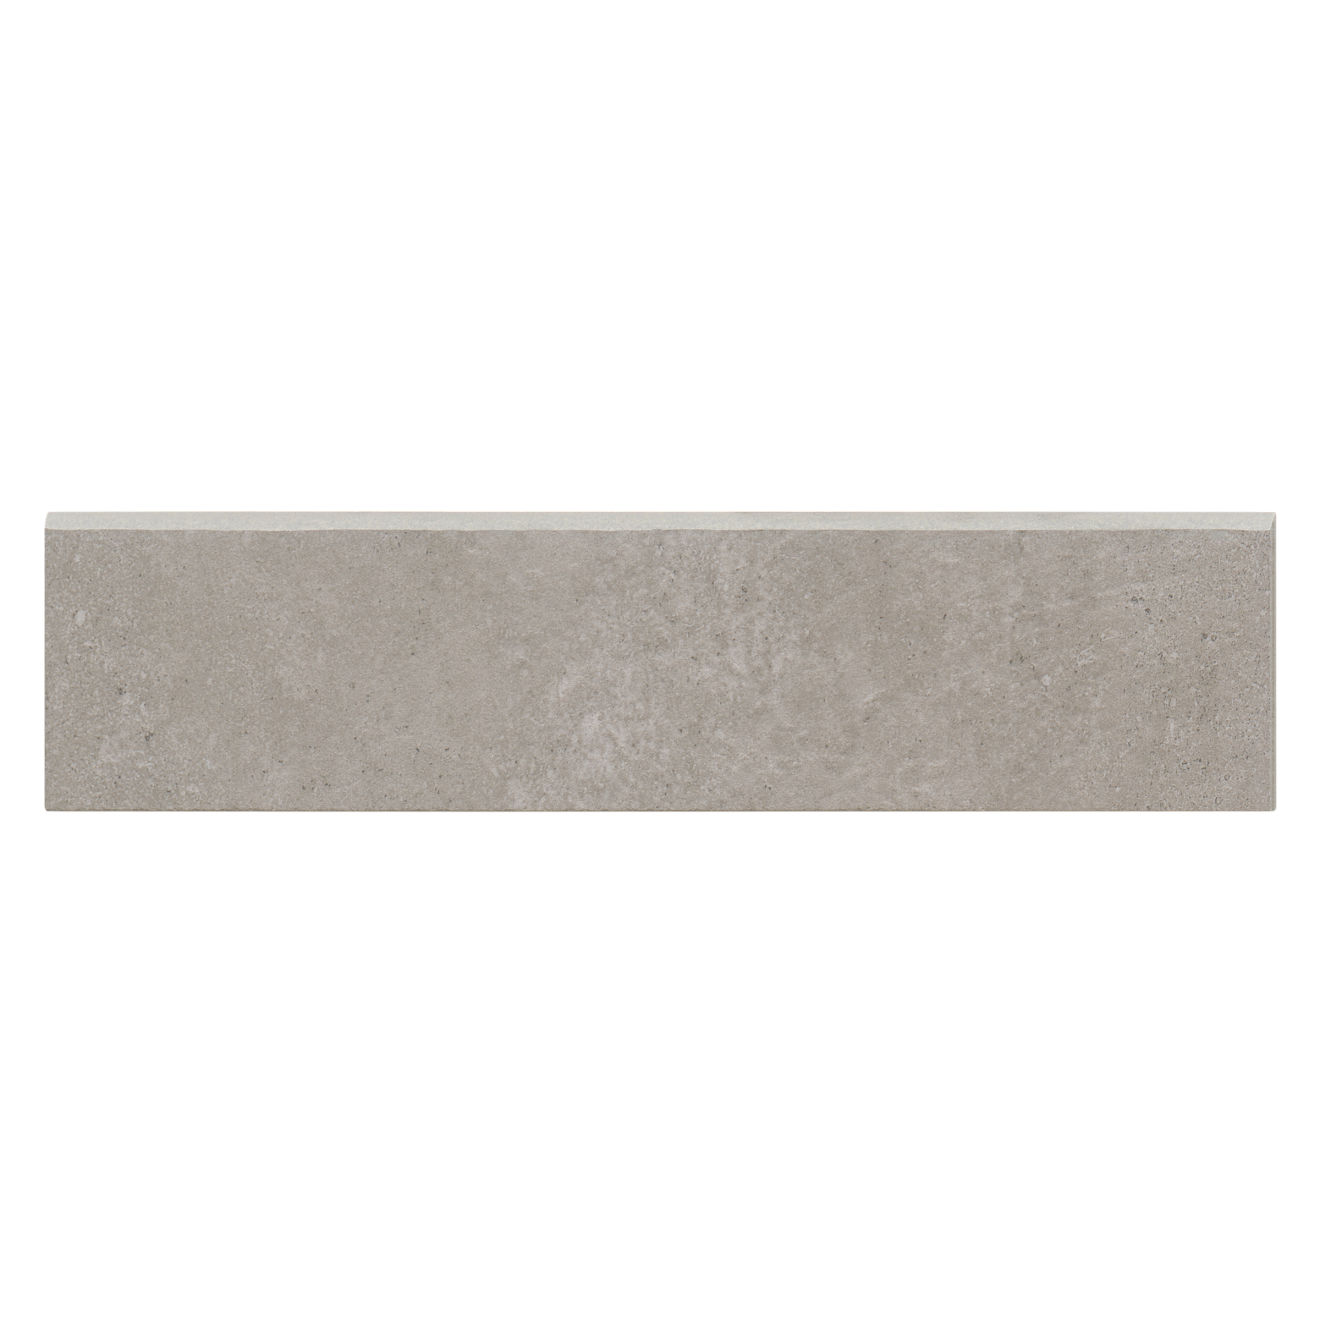 "Simply Modern 3"" x 12"" Trim in Grey"